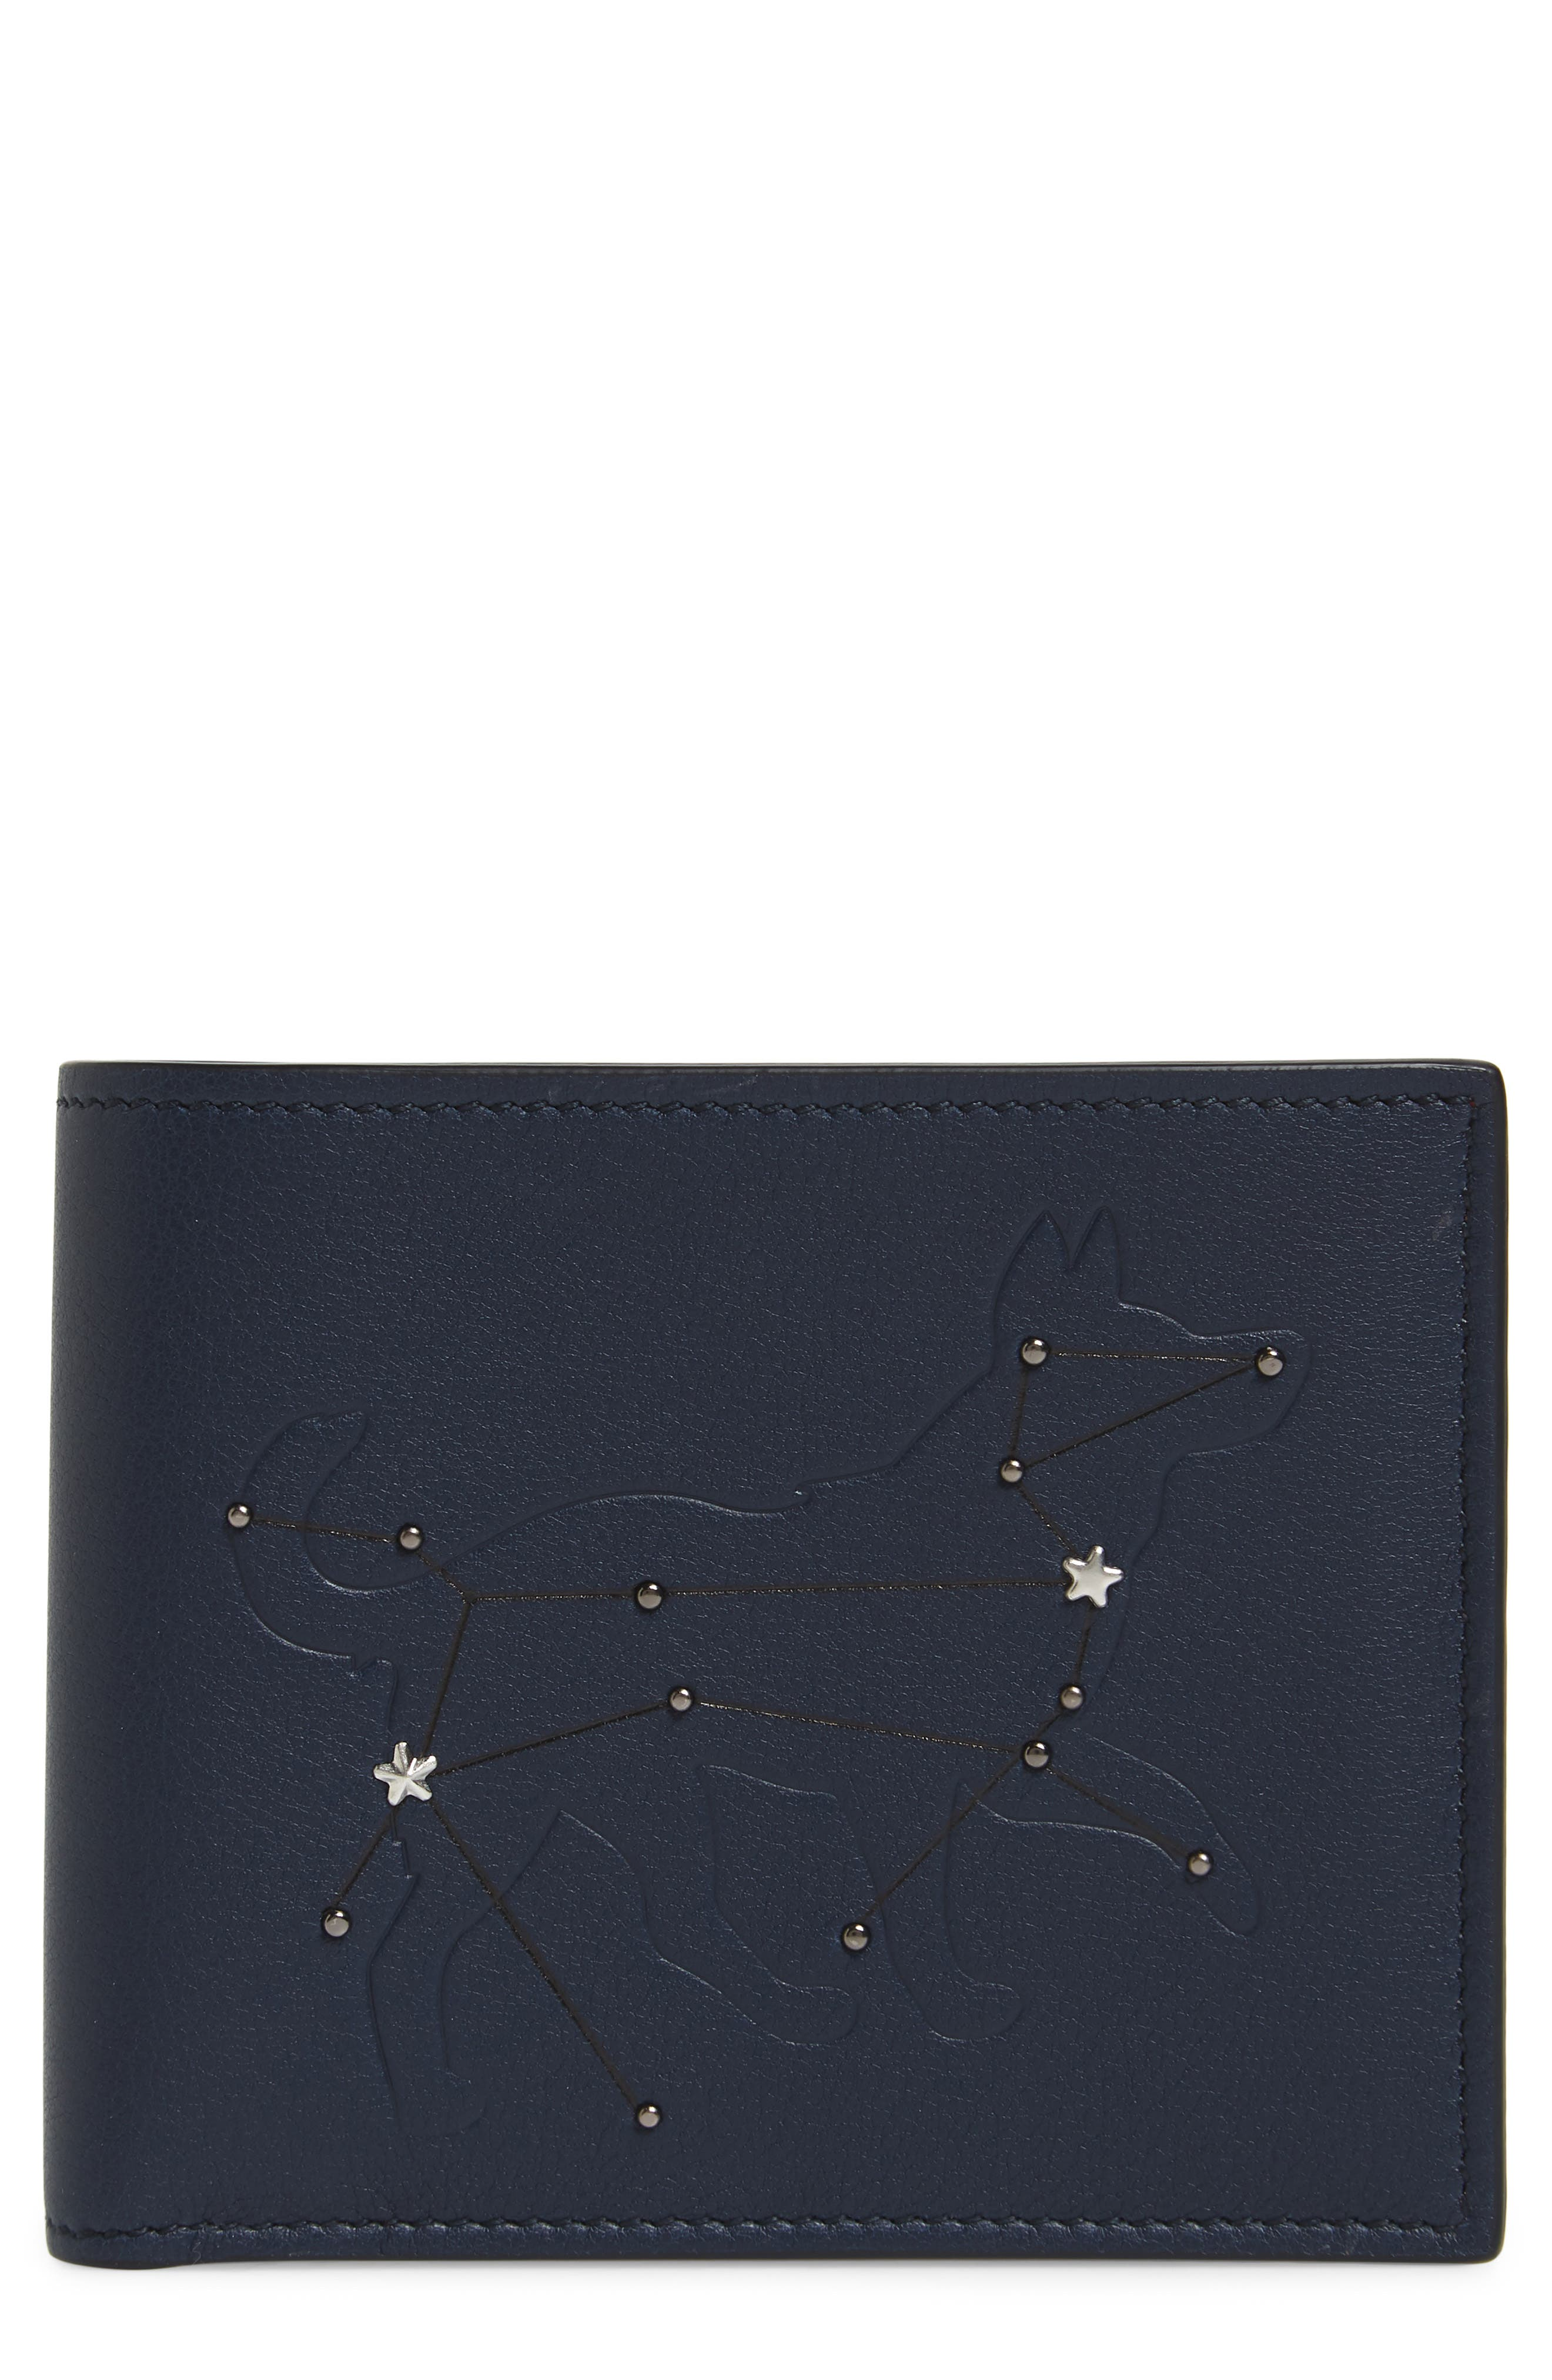 Carne Chinese New Year Studded Leather Wallet,                         Main,                         color, Navy